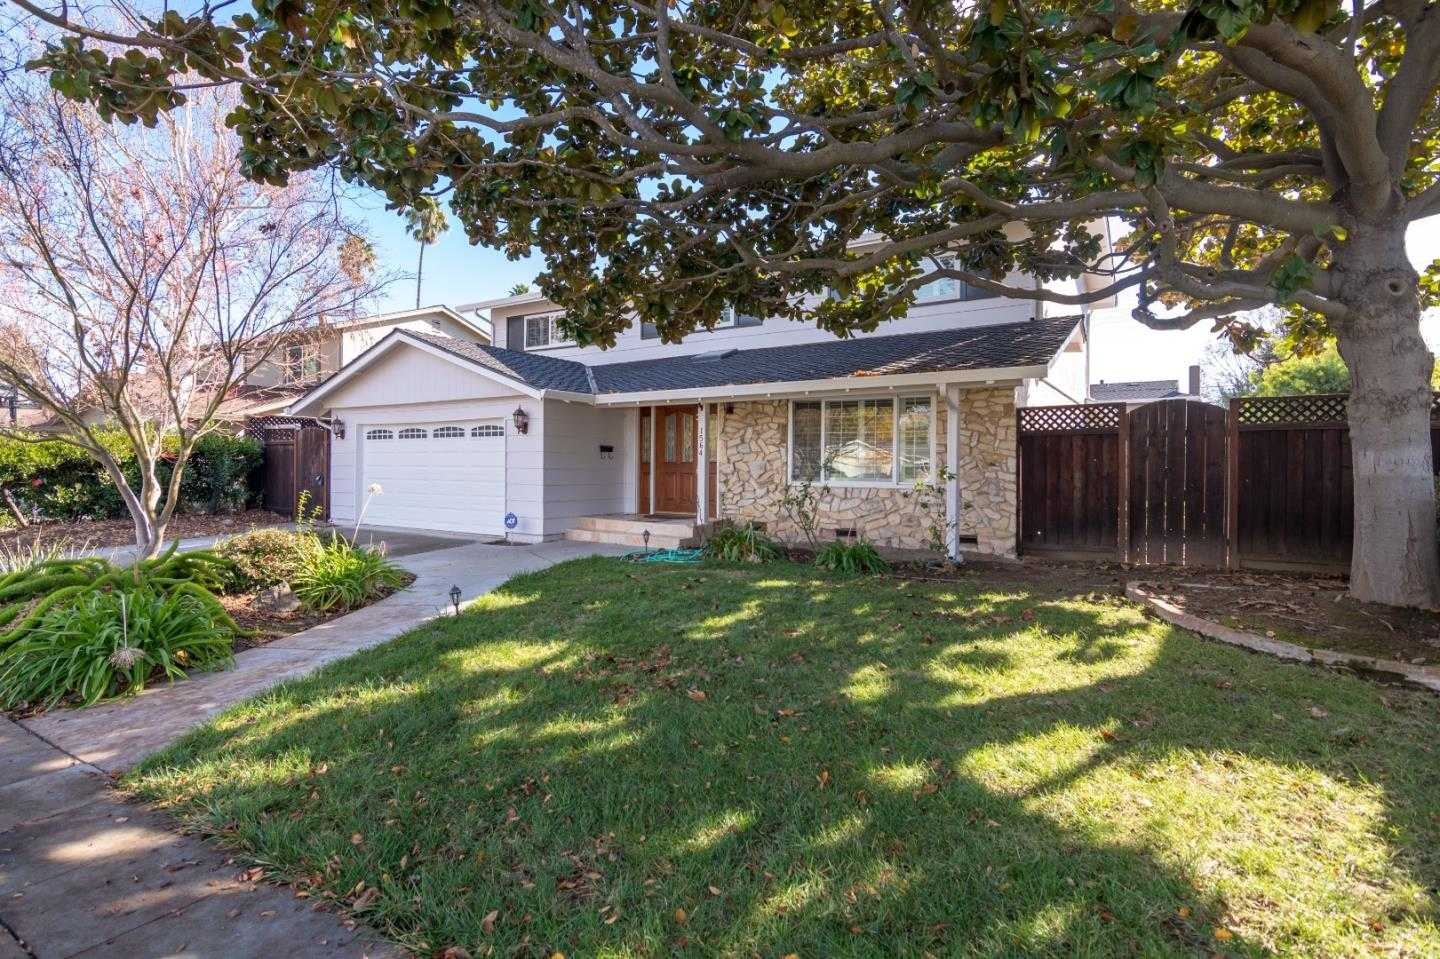 $1,789,000 - 5Br/4Ba -  for Sale in San Jose